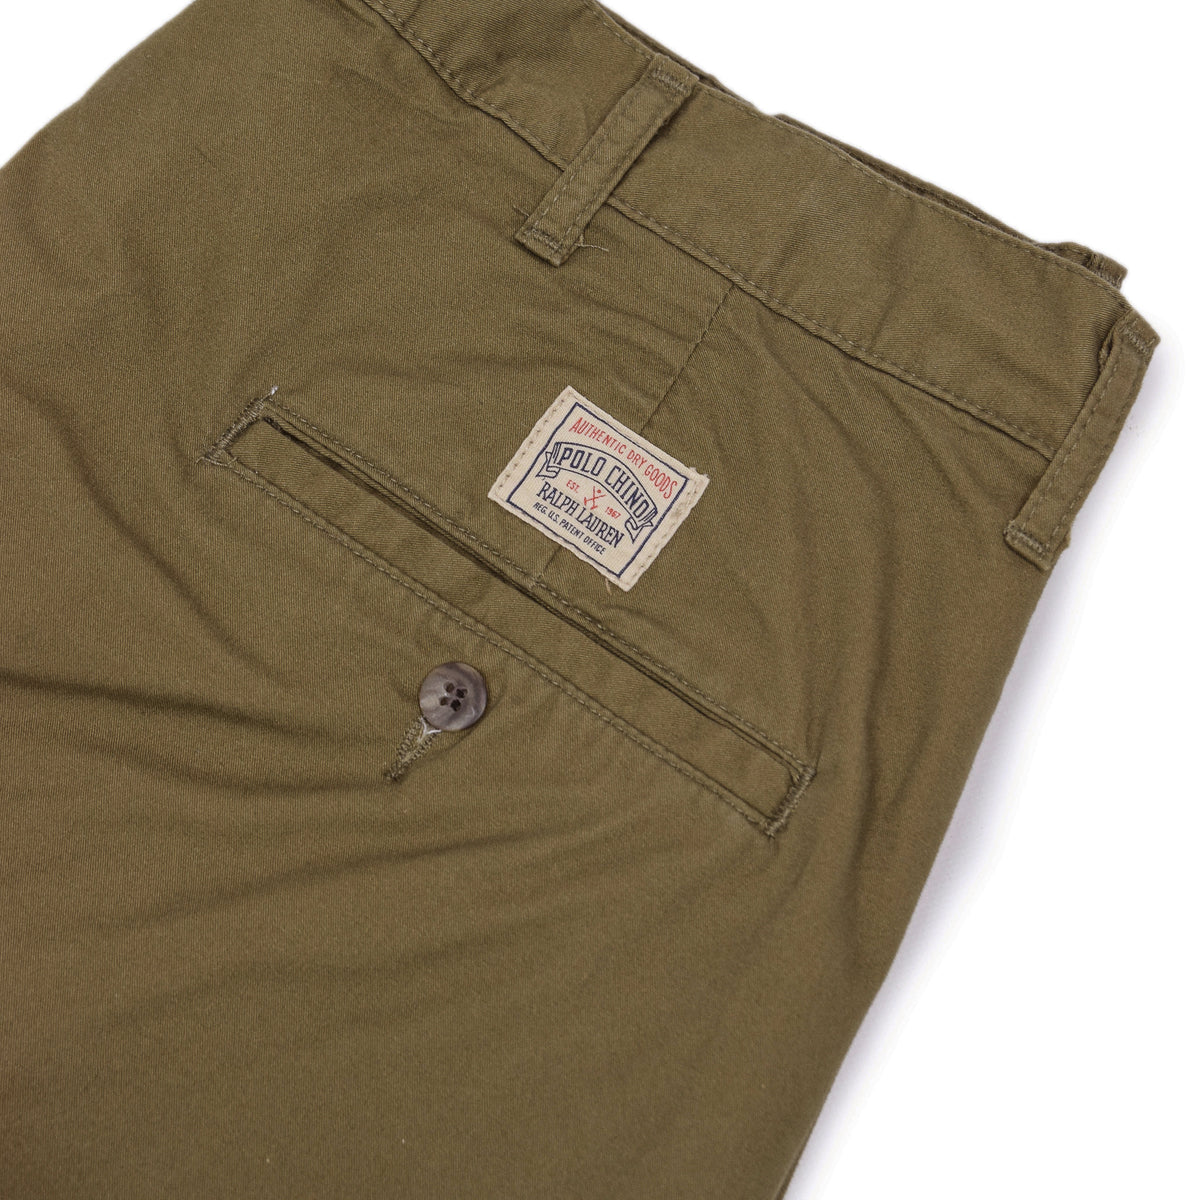 Vintage 90s Deadstock Polo Ralph Lauren Double Pleated Chino Shorts 32 W  patch label